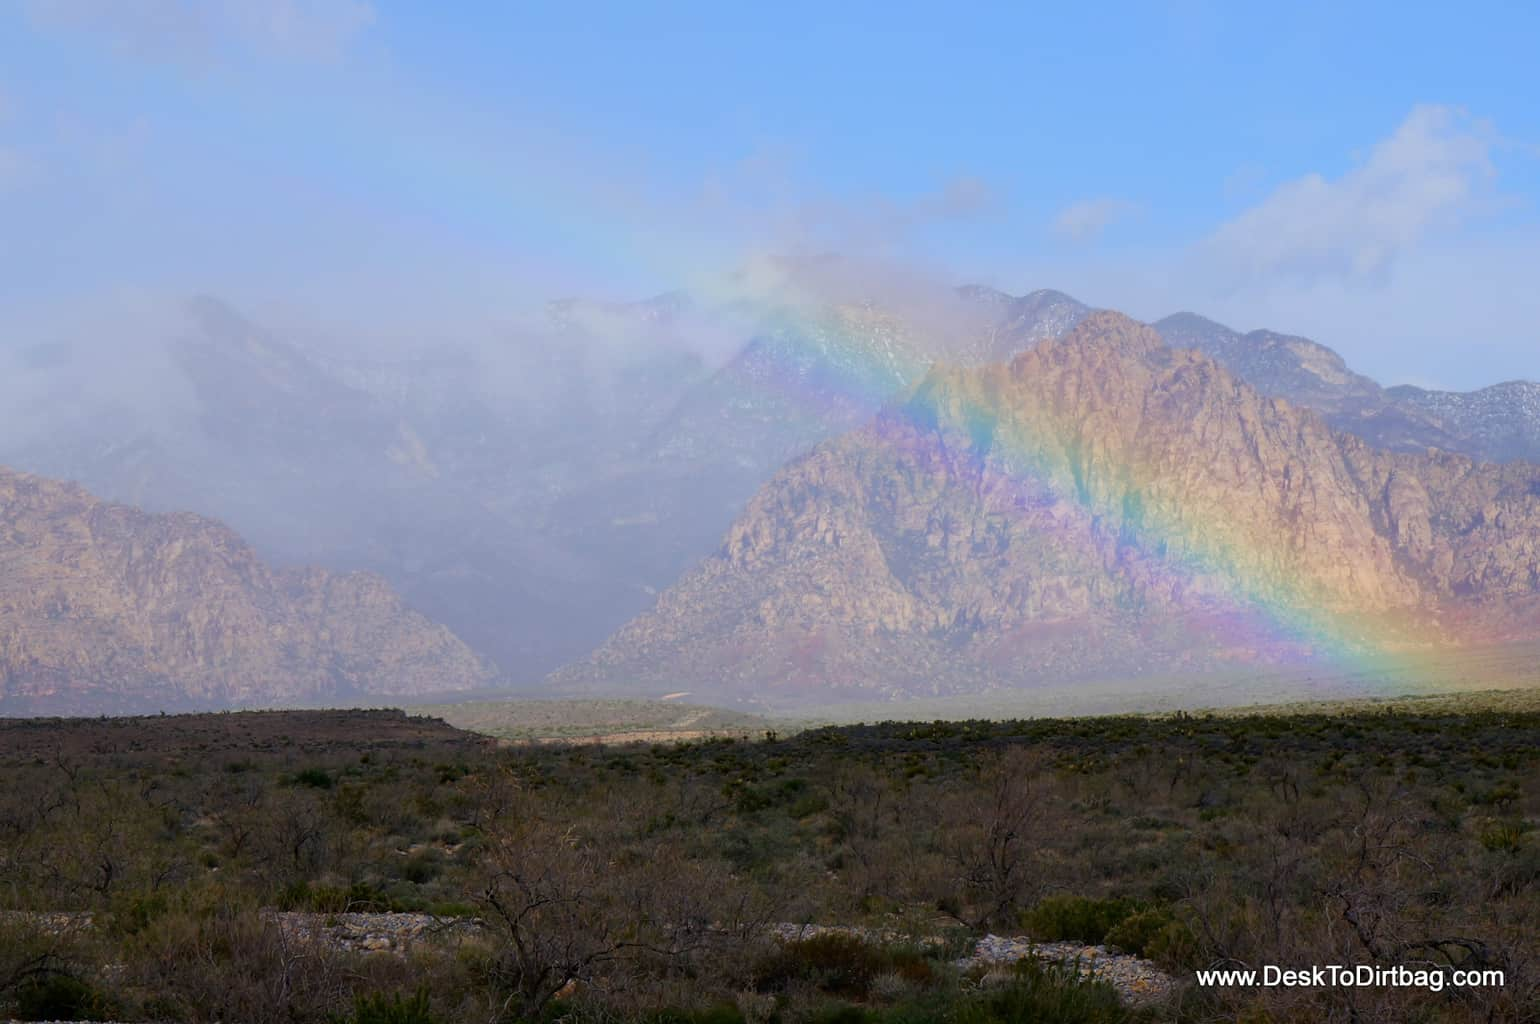 Rainbow over Red Rocks, just outside of Las Vegas, Nevada.